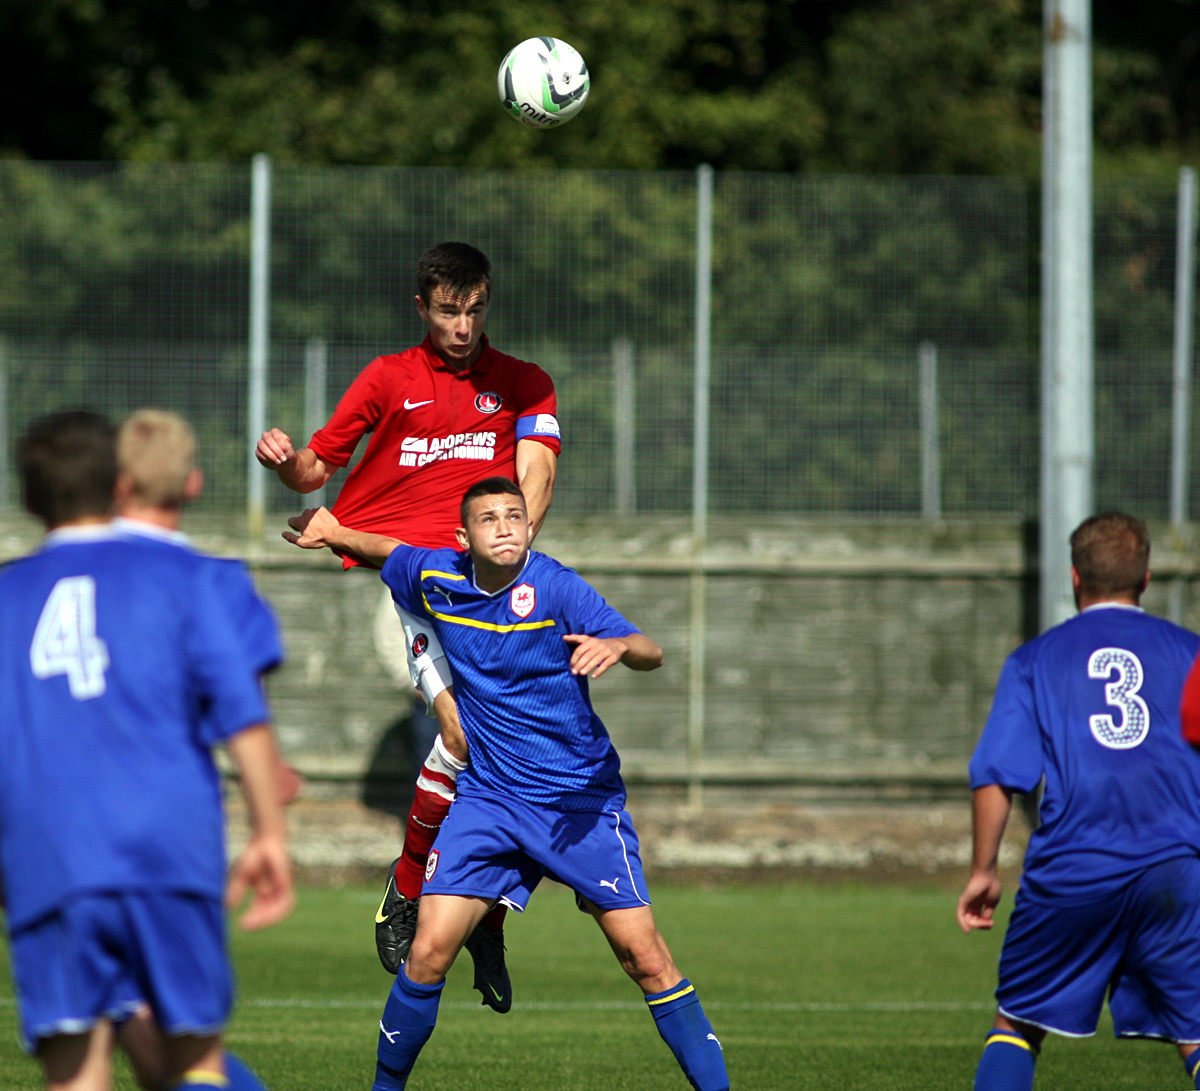 Harry Lennon wins a header playing for the U18s last season at Sparrows Lane. PICTURE BY EDMUND BOYDEN.